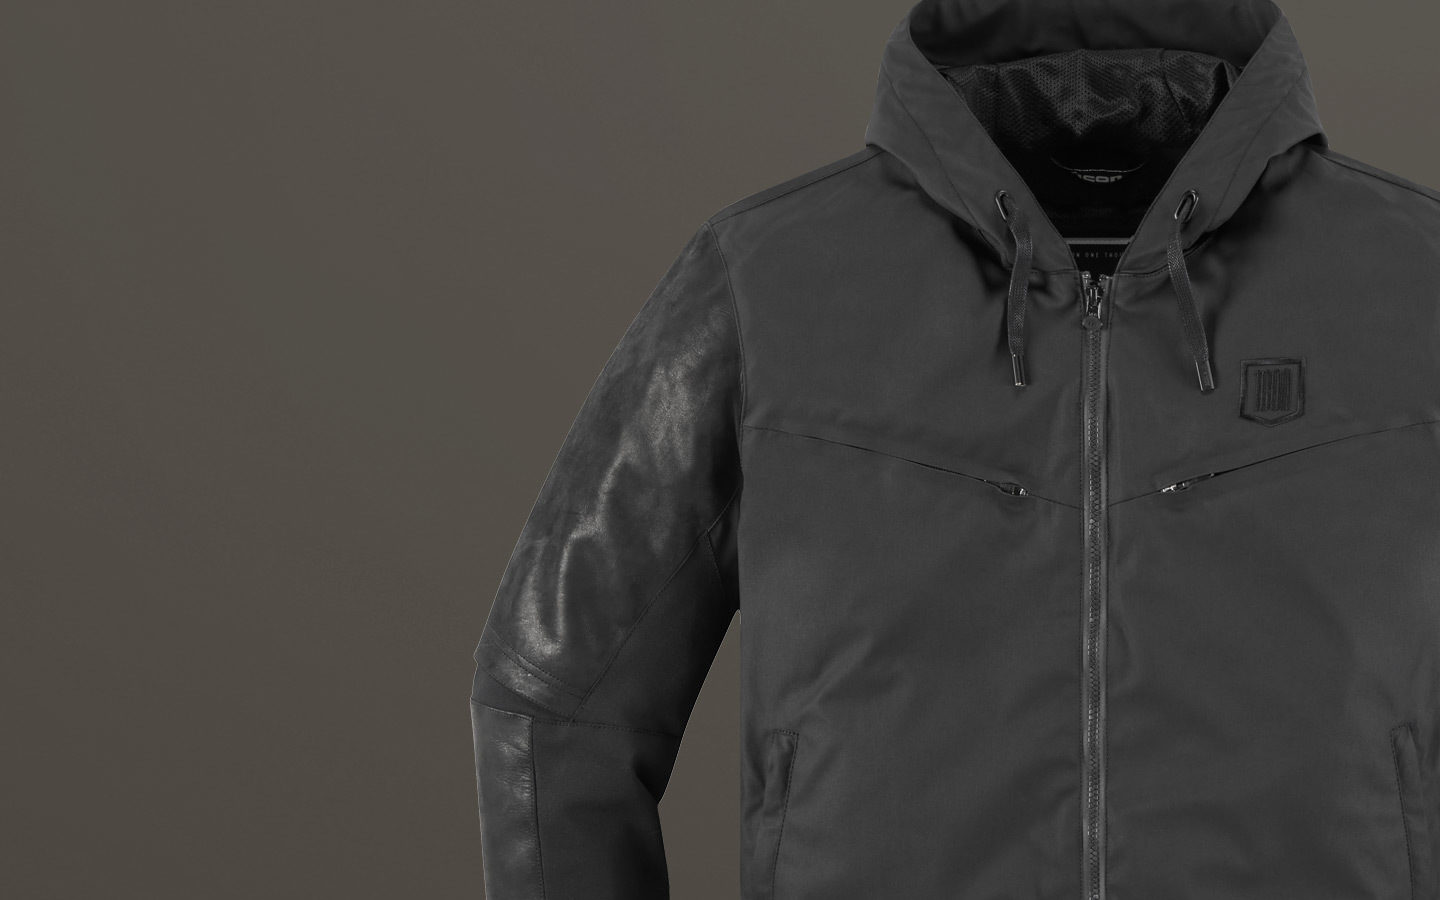 bd9364e563e6a Icon 1000 Varial - Black   Jackets   Icon 1000 - Go fast, look flash.